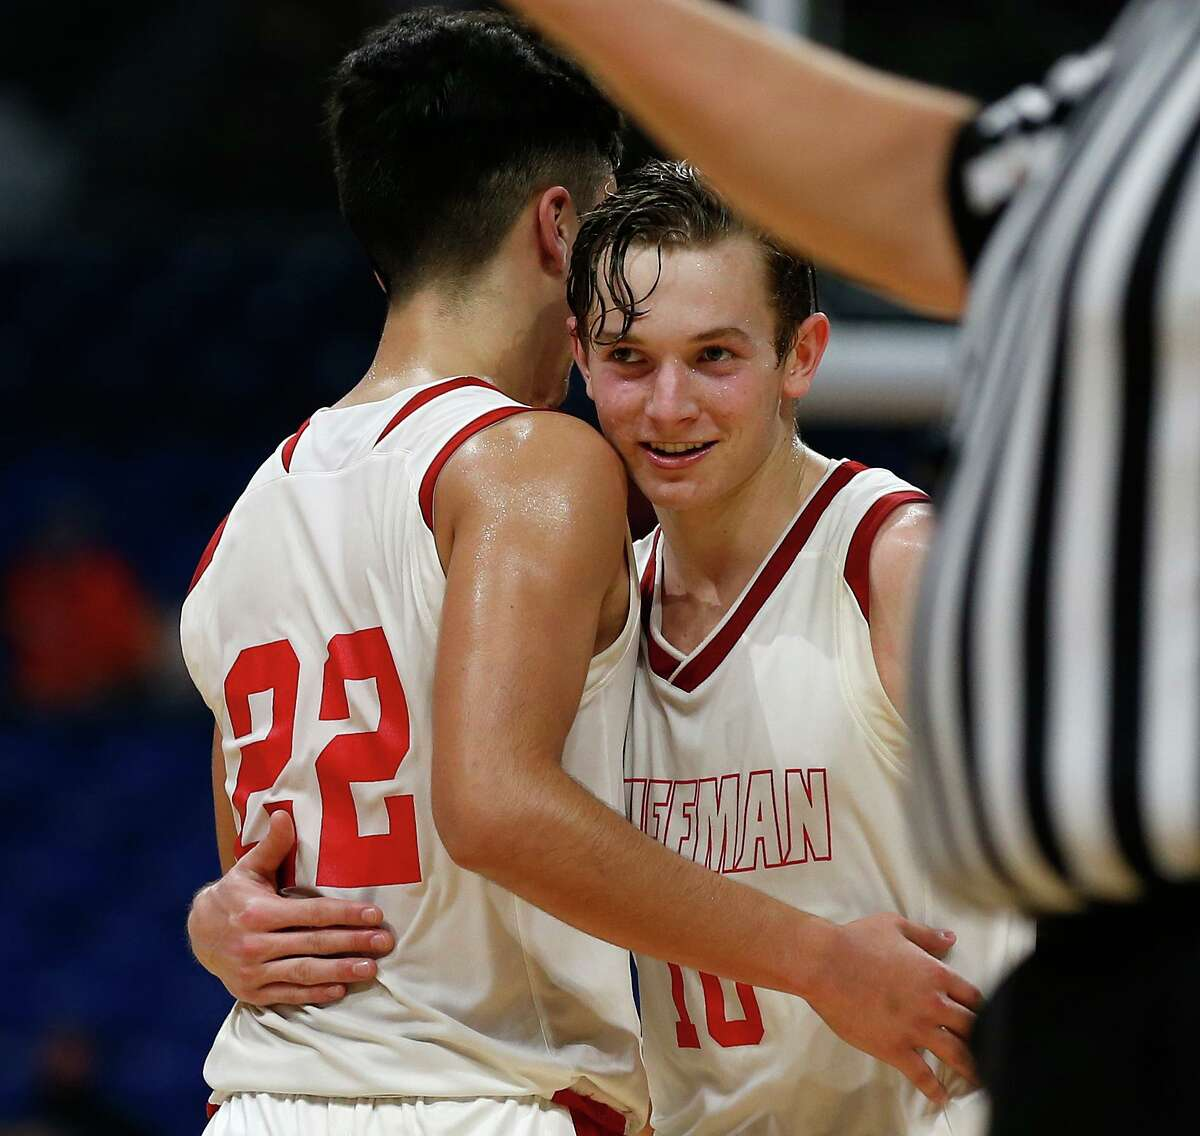 Huffman Hargrave Jacob Harvey #10 is hugged by Huffman Hargrave Jesse Viramontez #22 late in fourth quarter. Huffman vs. Argyle for Class 4A state basketball championship at the Alamodome on Saturday, March 13, 2021